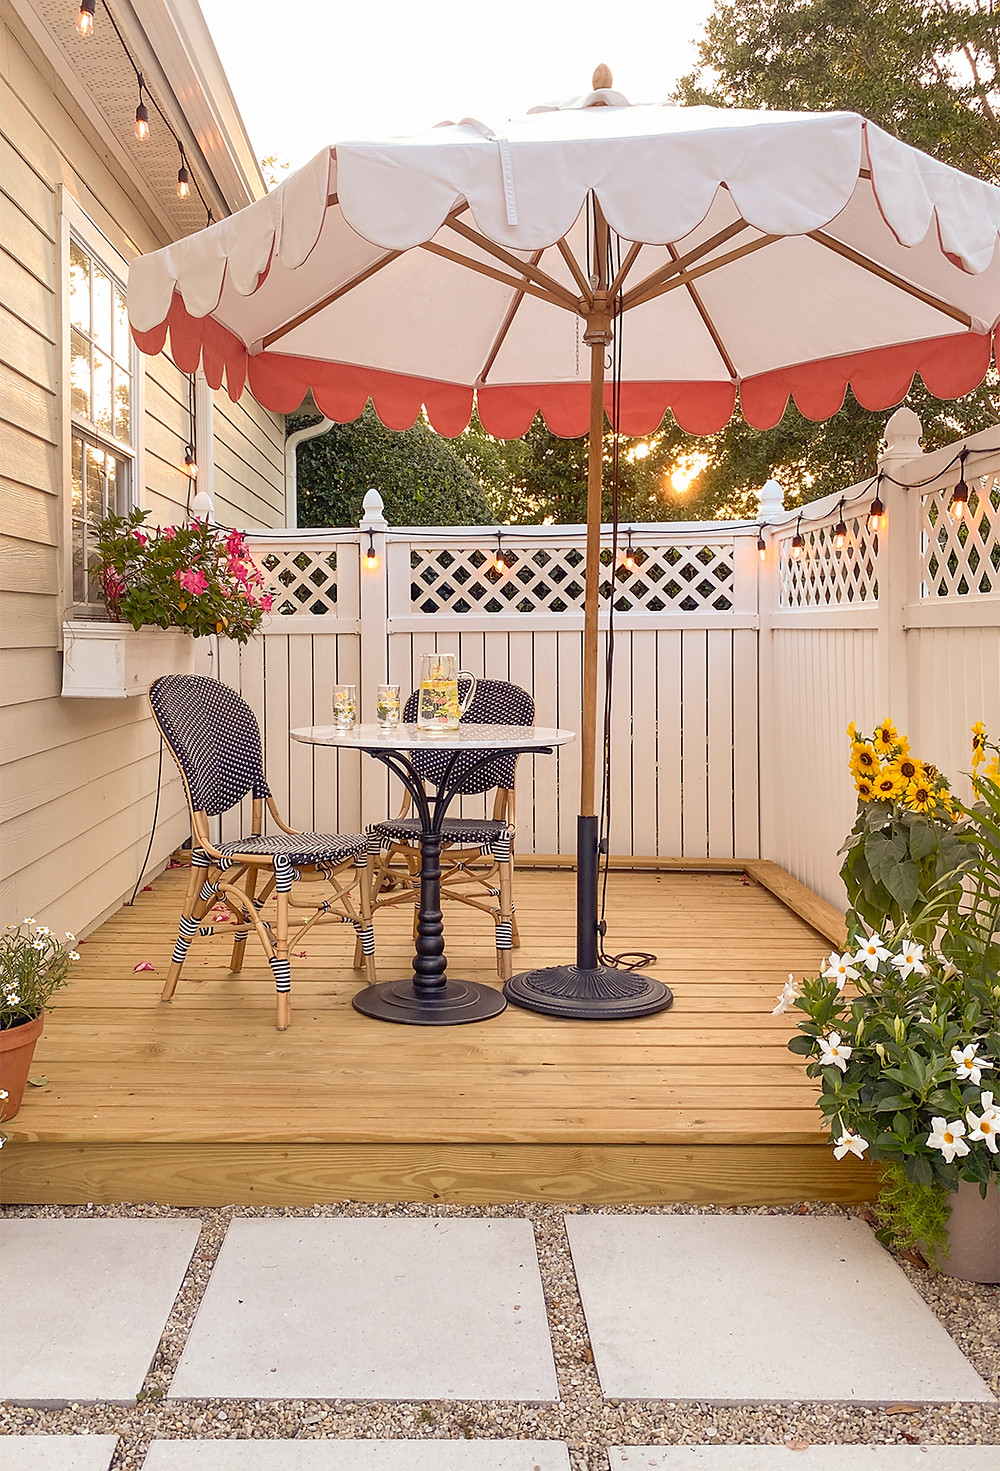 Wooden deck with a table and two chairs under an umbrella